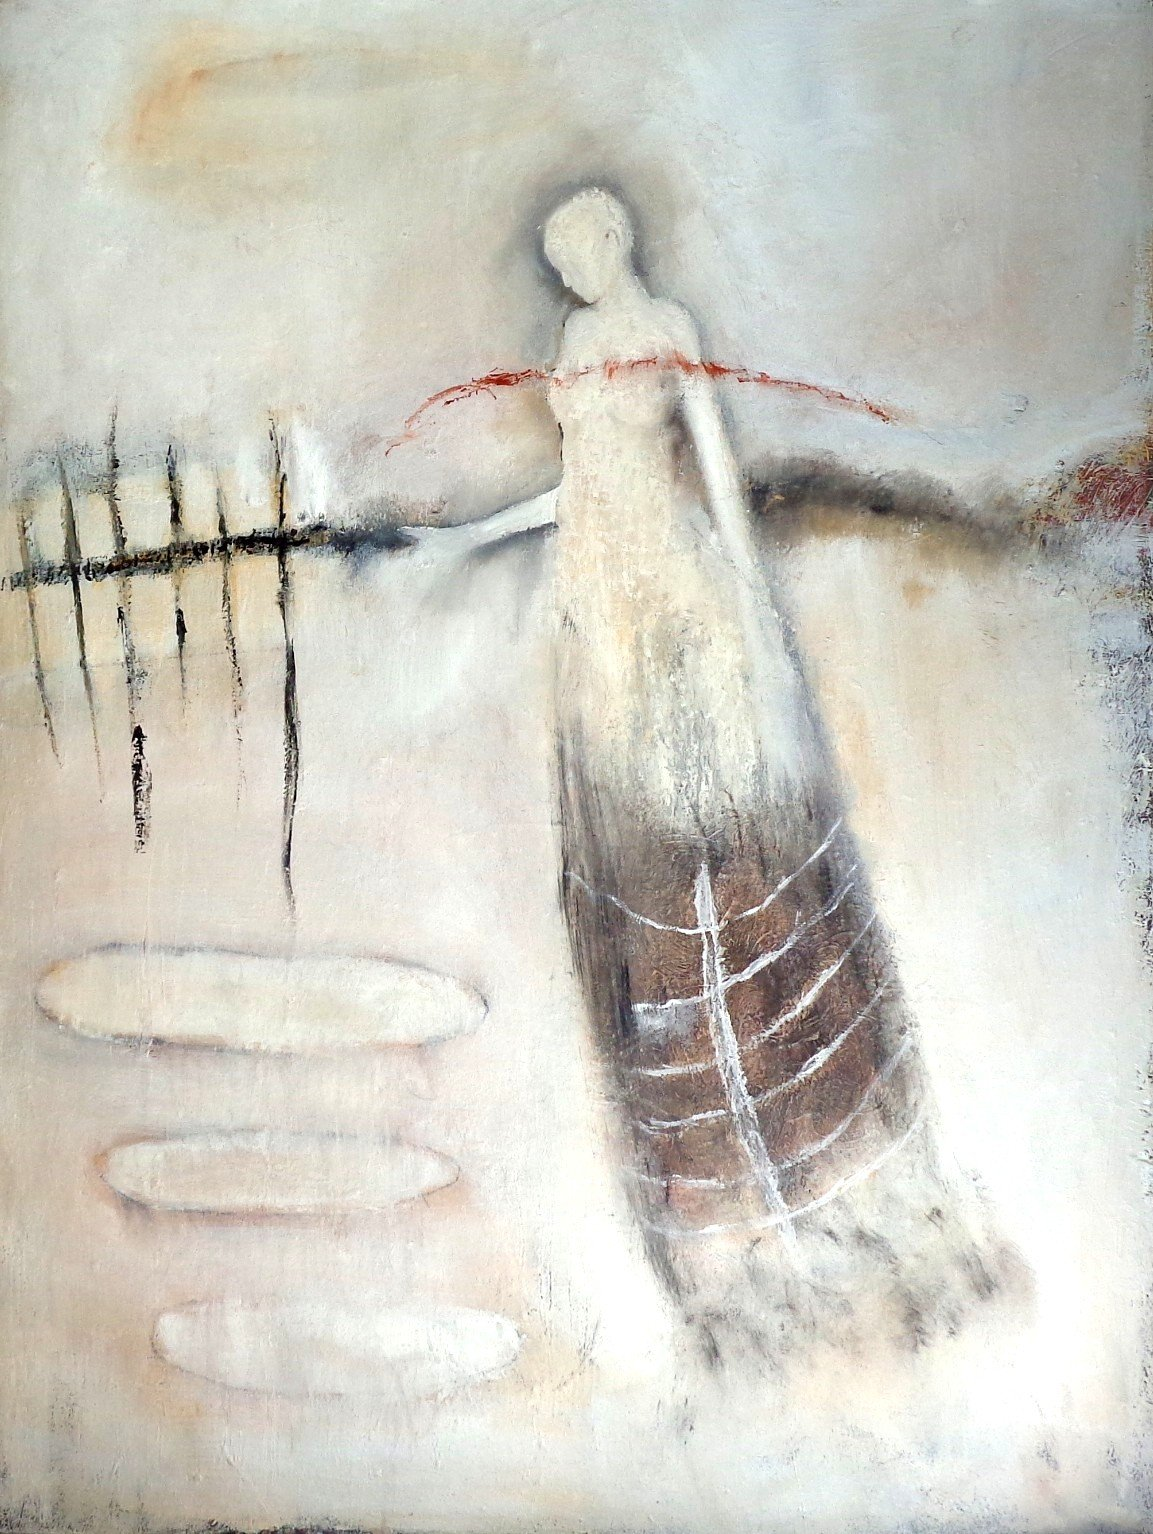 """From Nothing"" by Jeanie Tomanek, Oil on canvas, 48x36 inches"